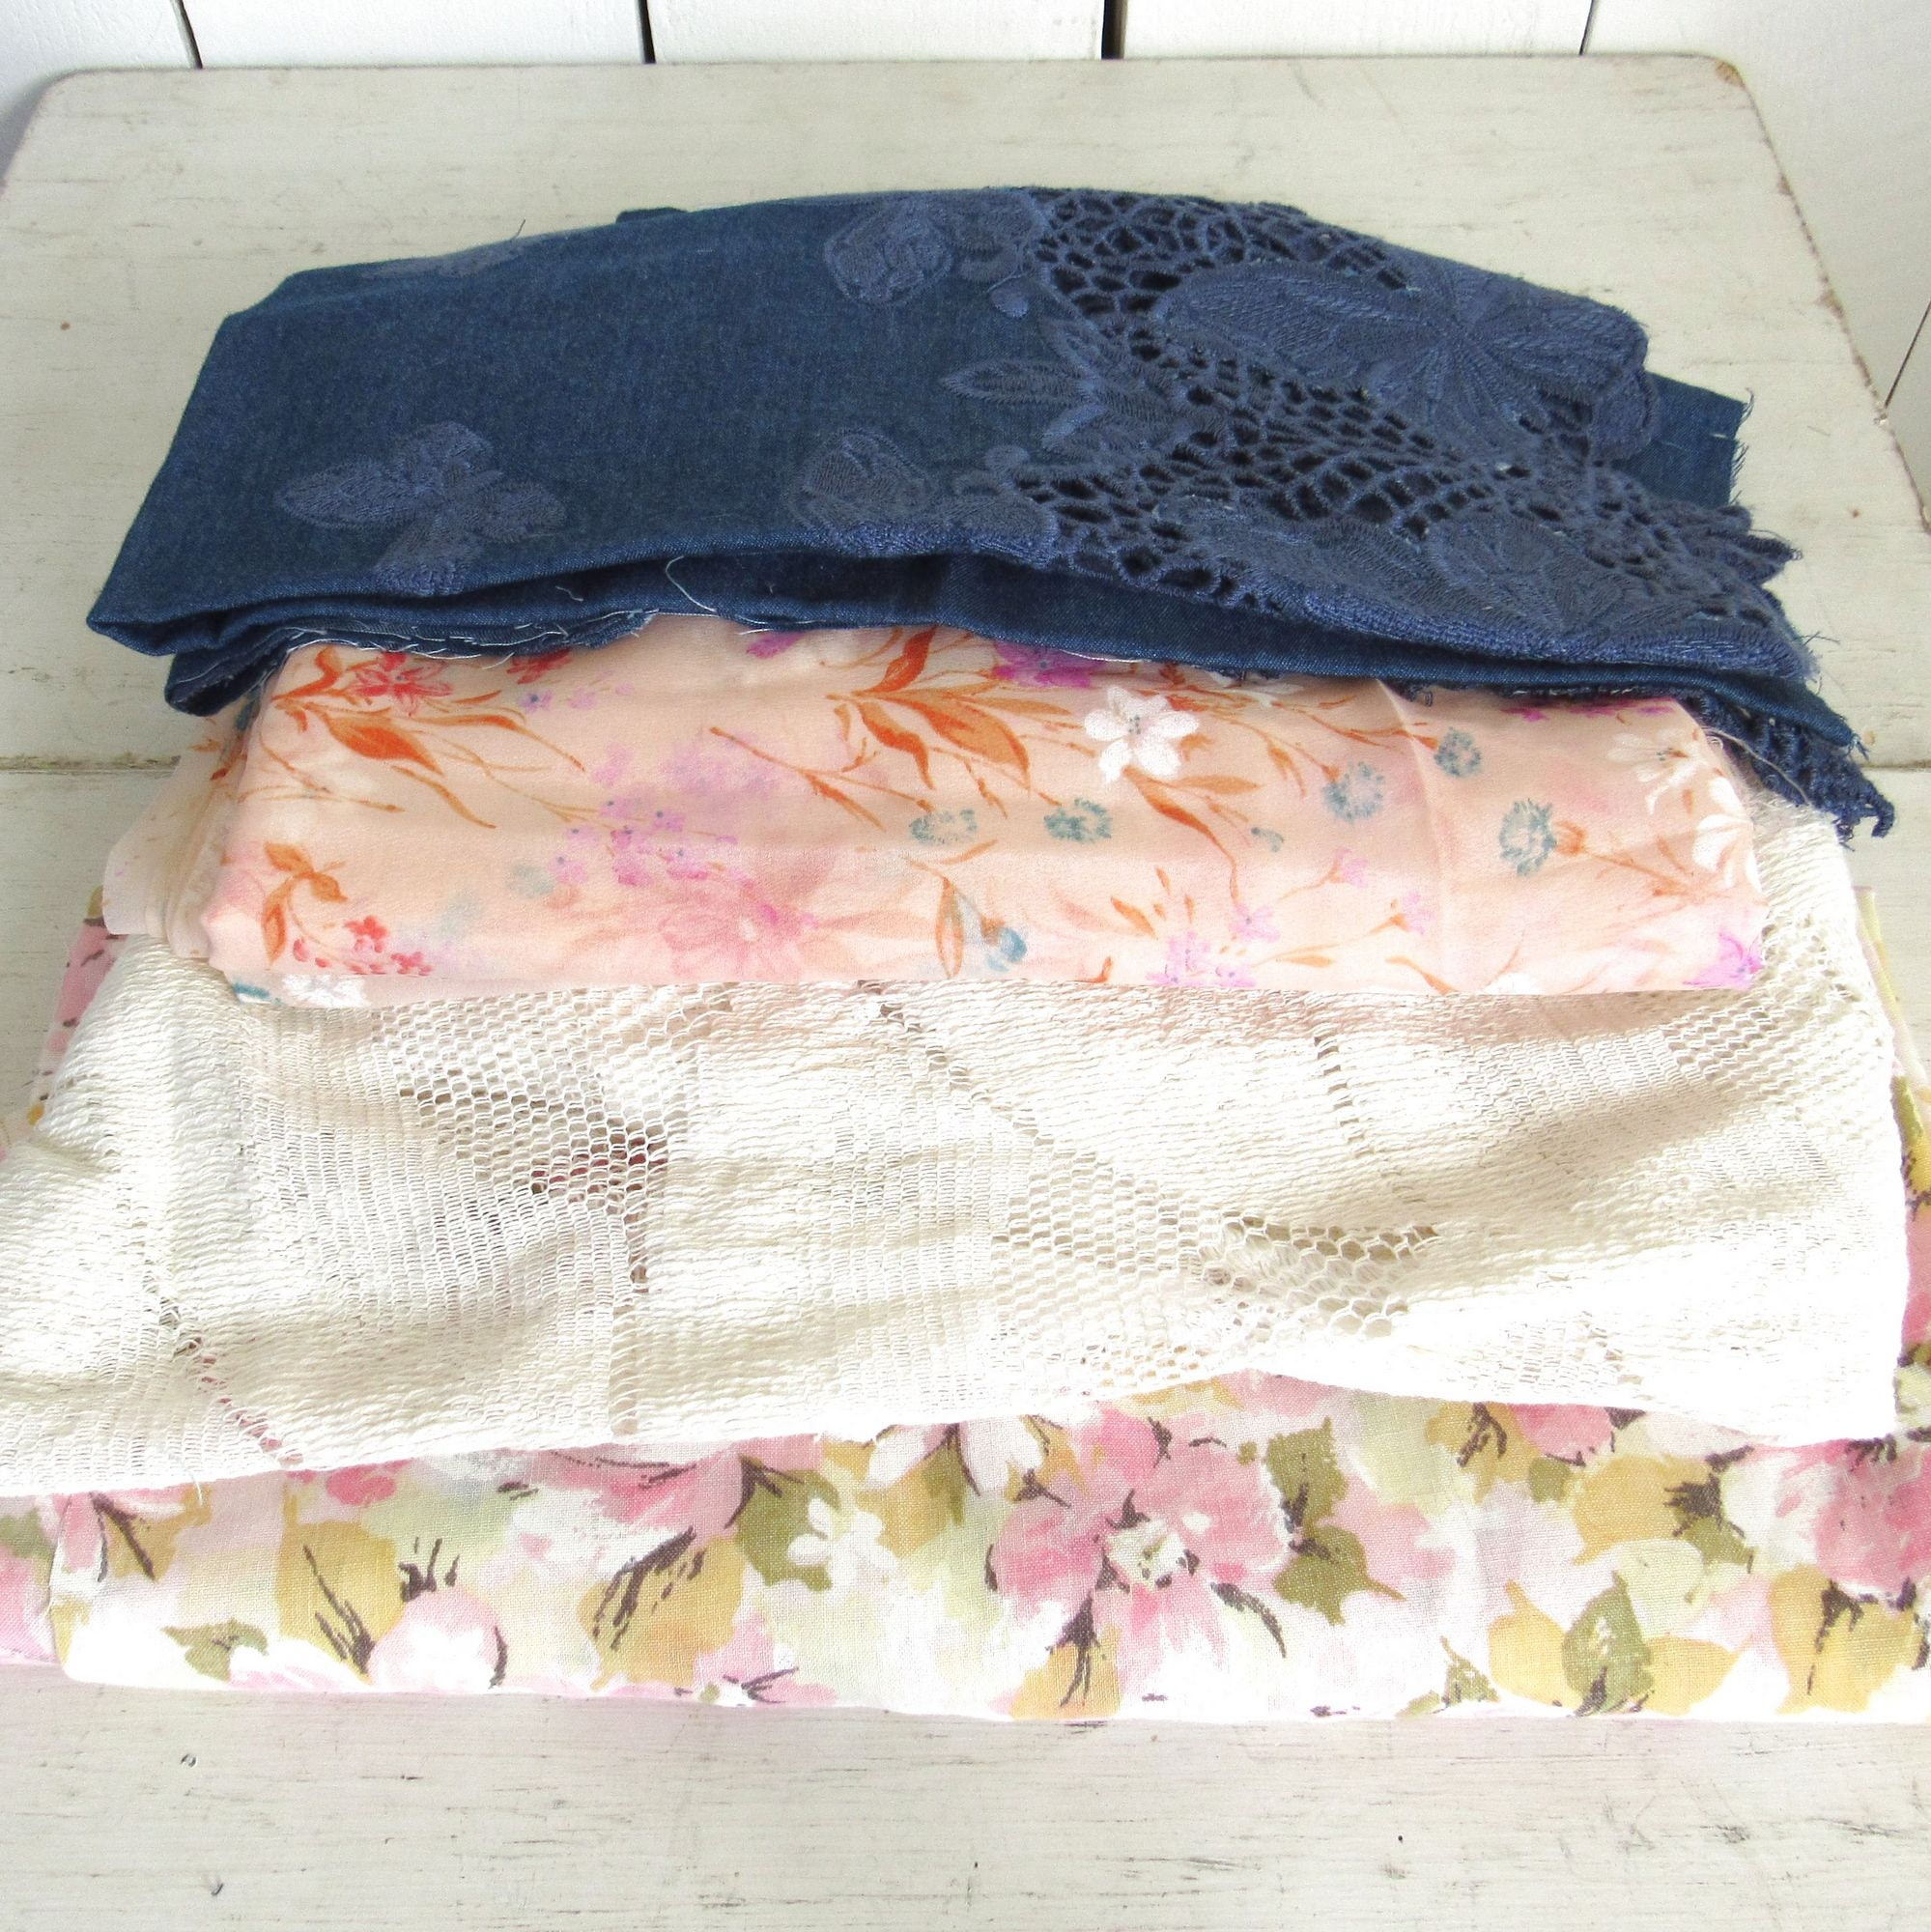 Floral Lace Fabrics 70s Vintage And Modern Fabric Lot Pink Etsy Bike Tool 15 In 1 With Chain Cutter United Hijau Zoom